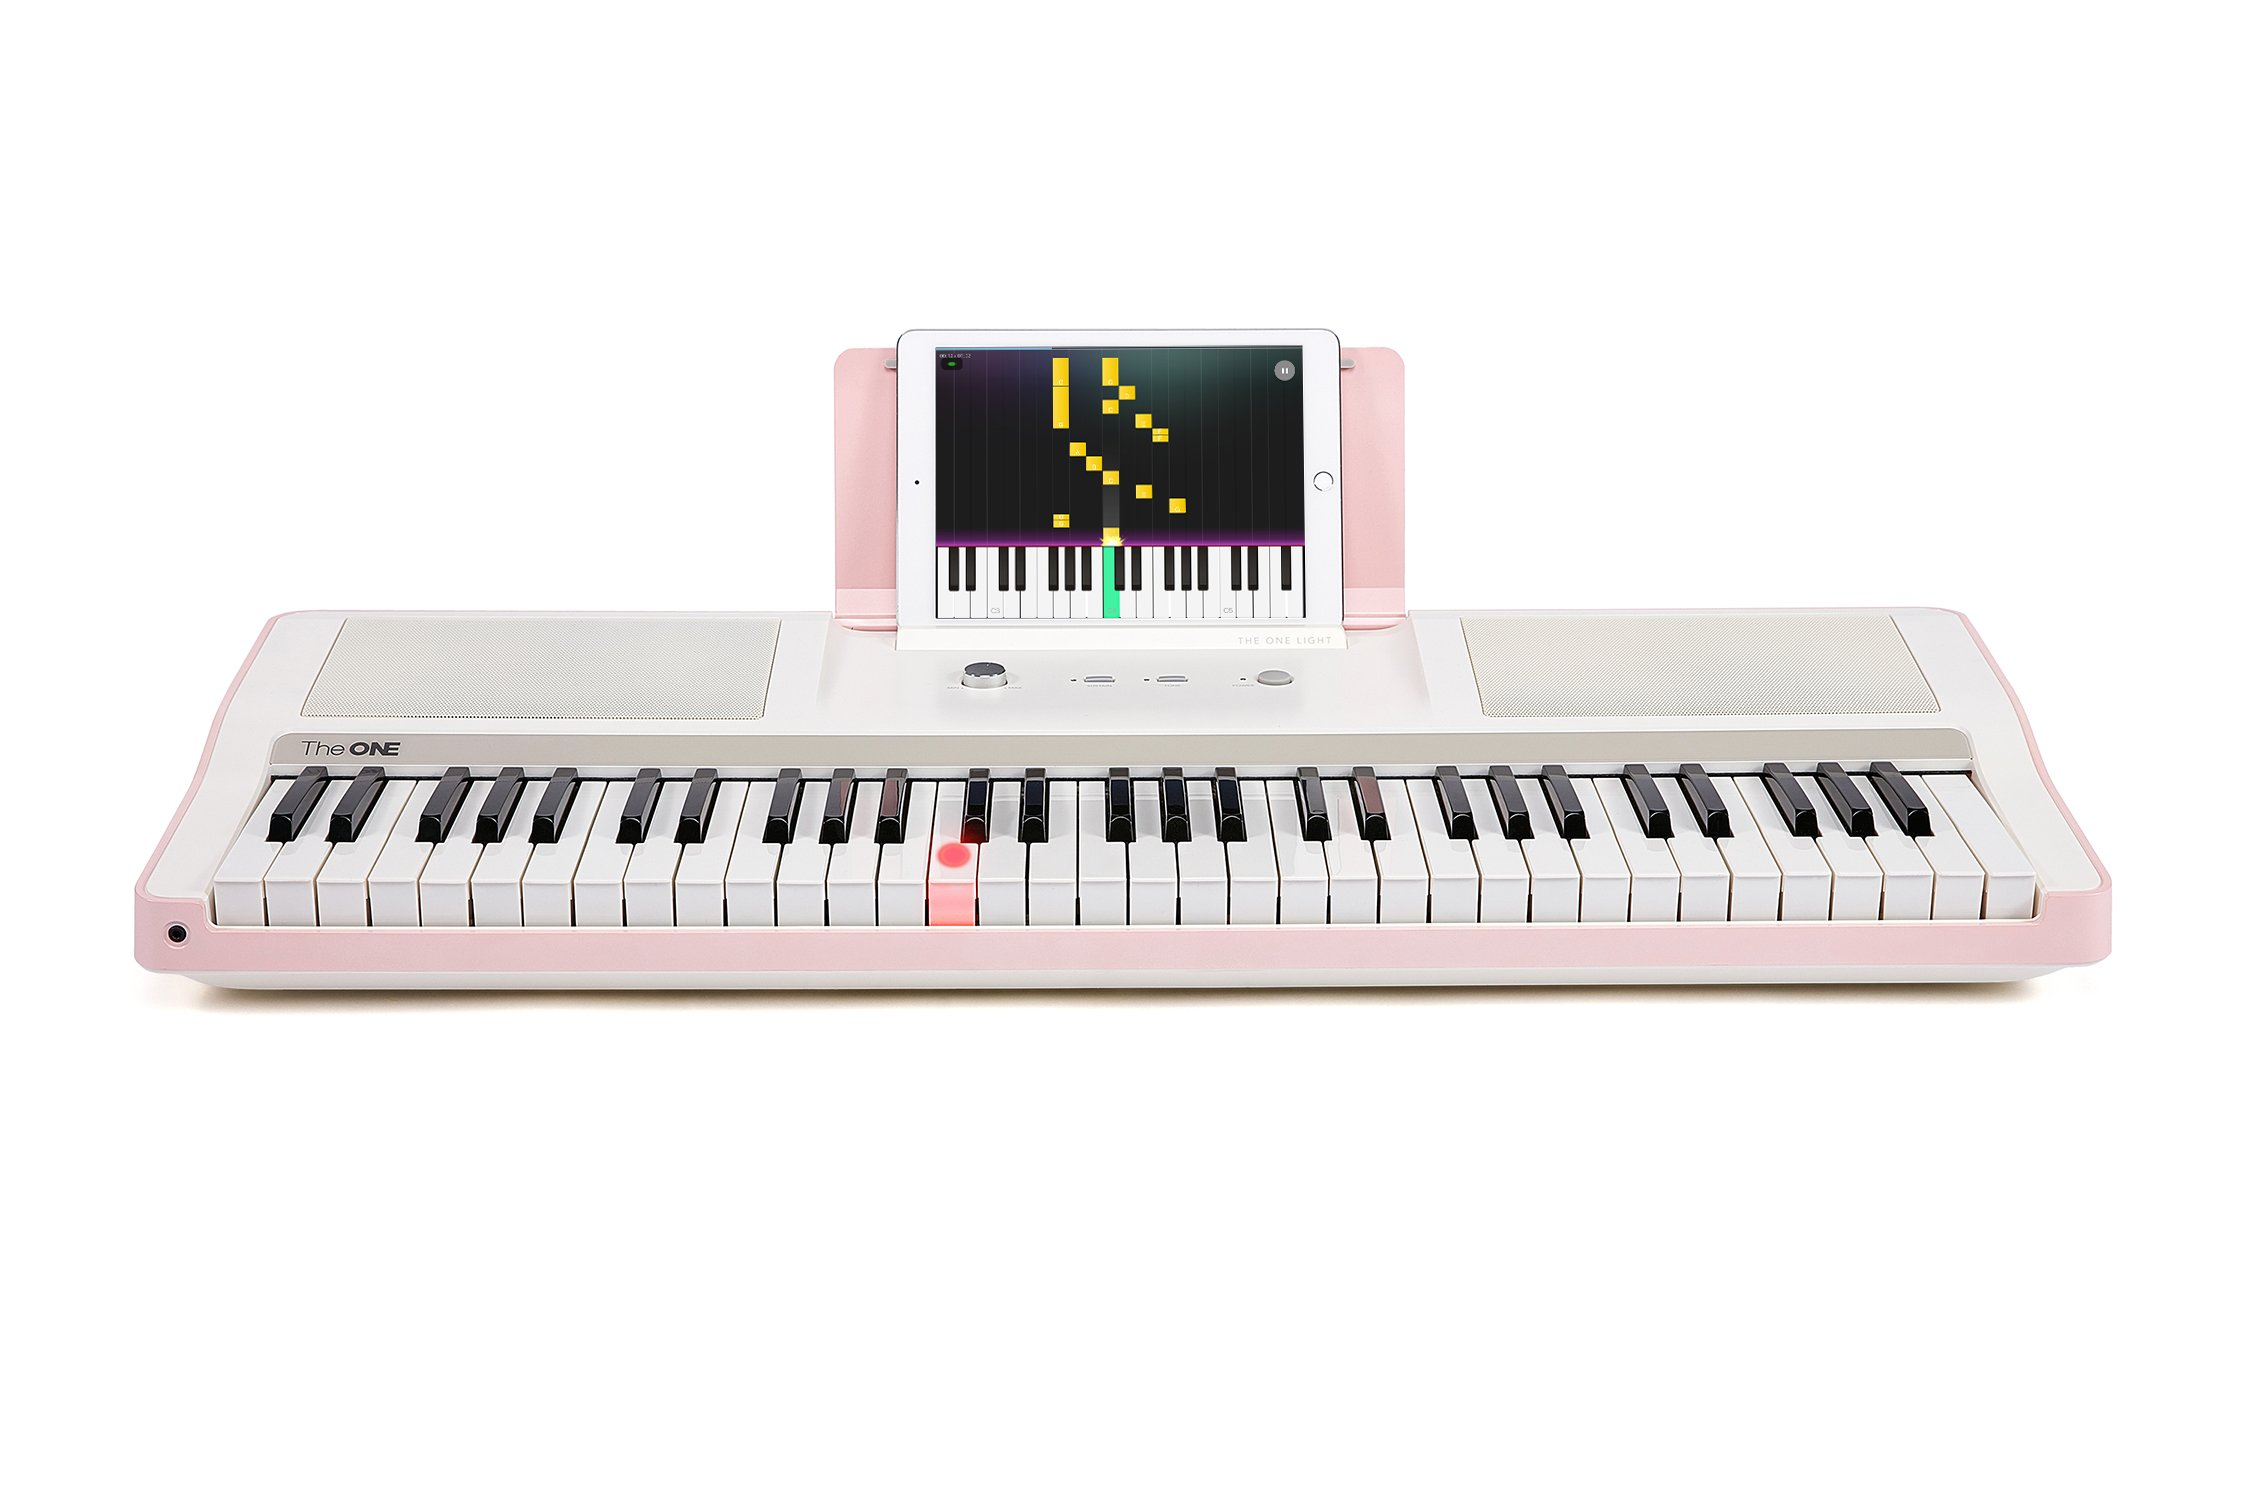 Smart Piano Keyboard 61-Key Portable Light Digital Piano Keyboard,Electronic Keyboard Music LED,Great for Beginner-Kids/Adults Learning/Training (Pink) by The ONE Music Group